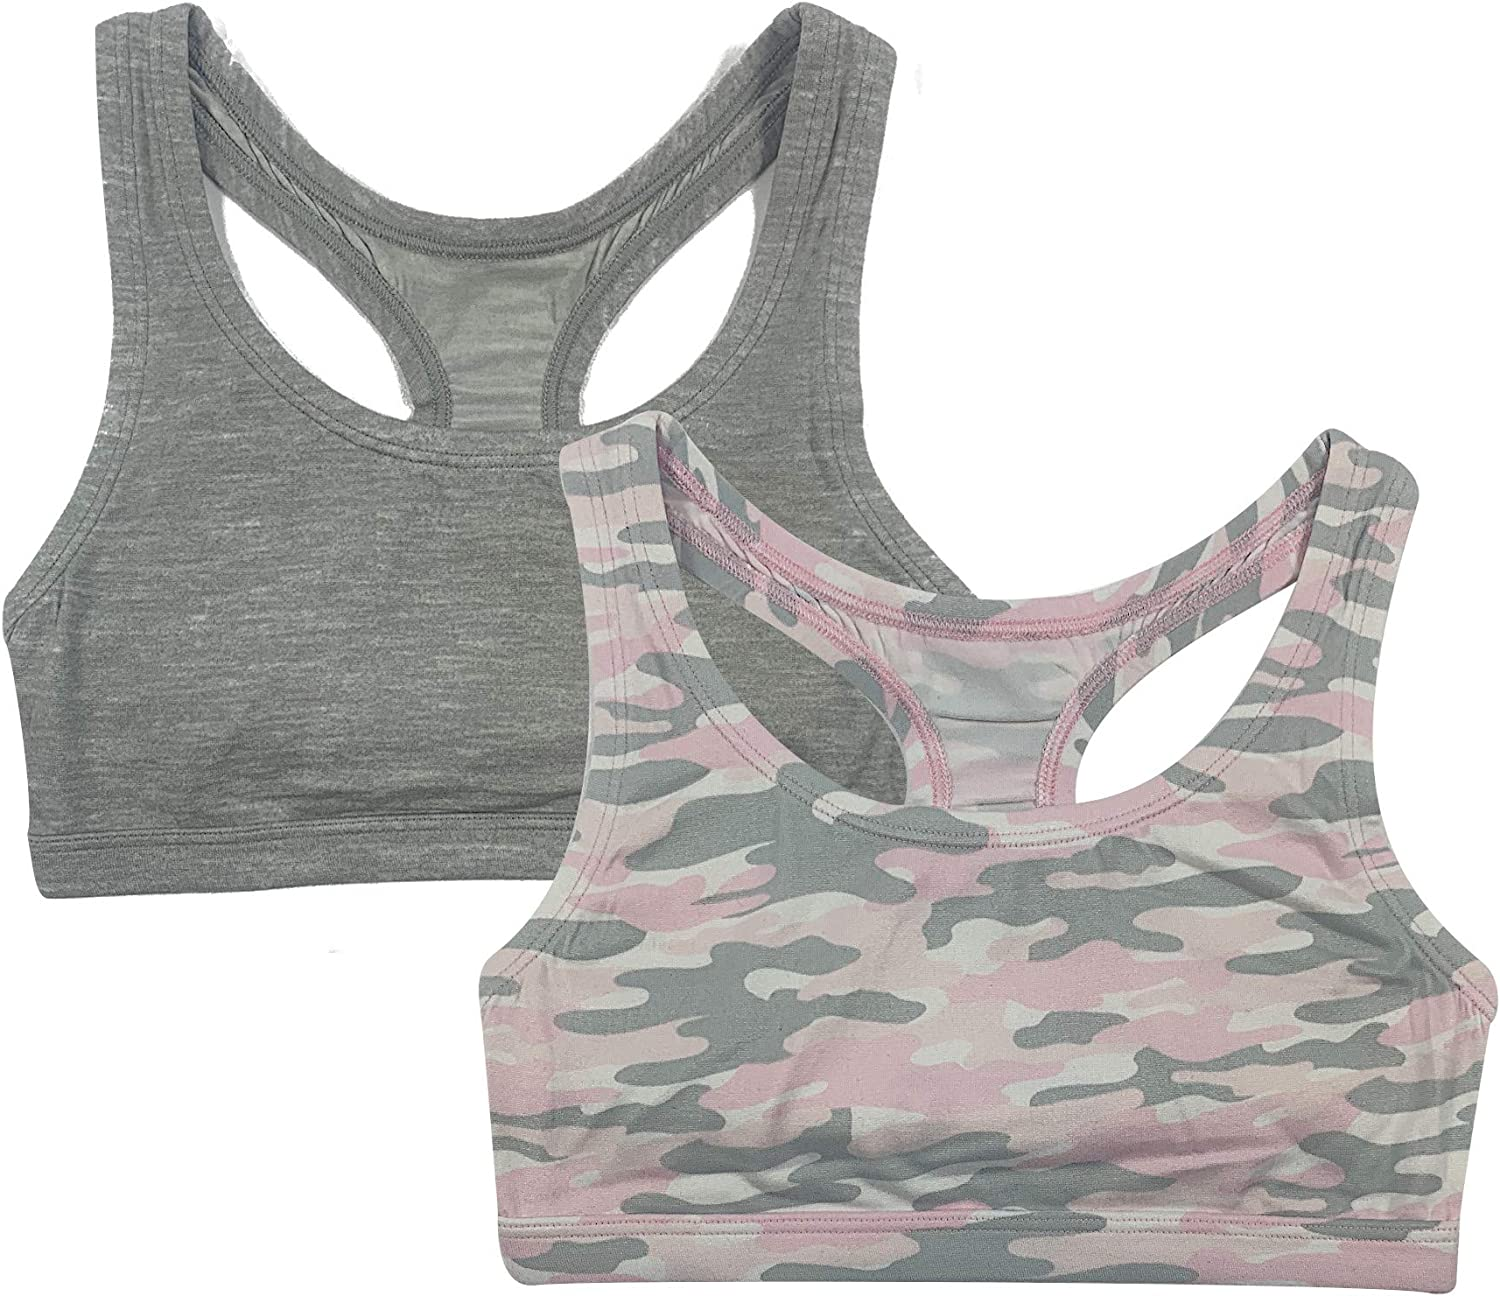 Popular Girl's Print and Solid Racerback Bra - 2 Pack Challenge the lowest price of Japan In stock ☆ Sports